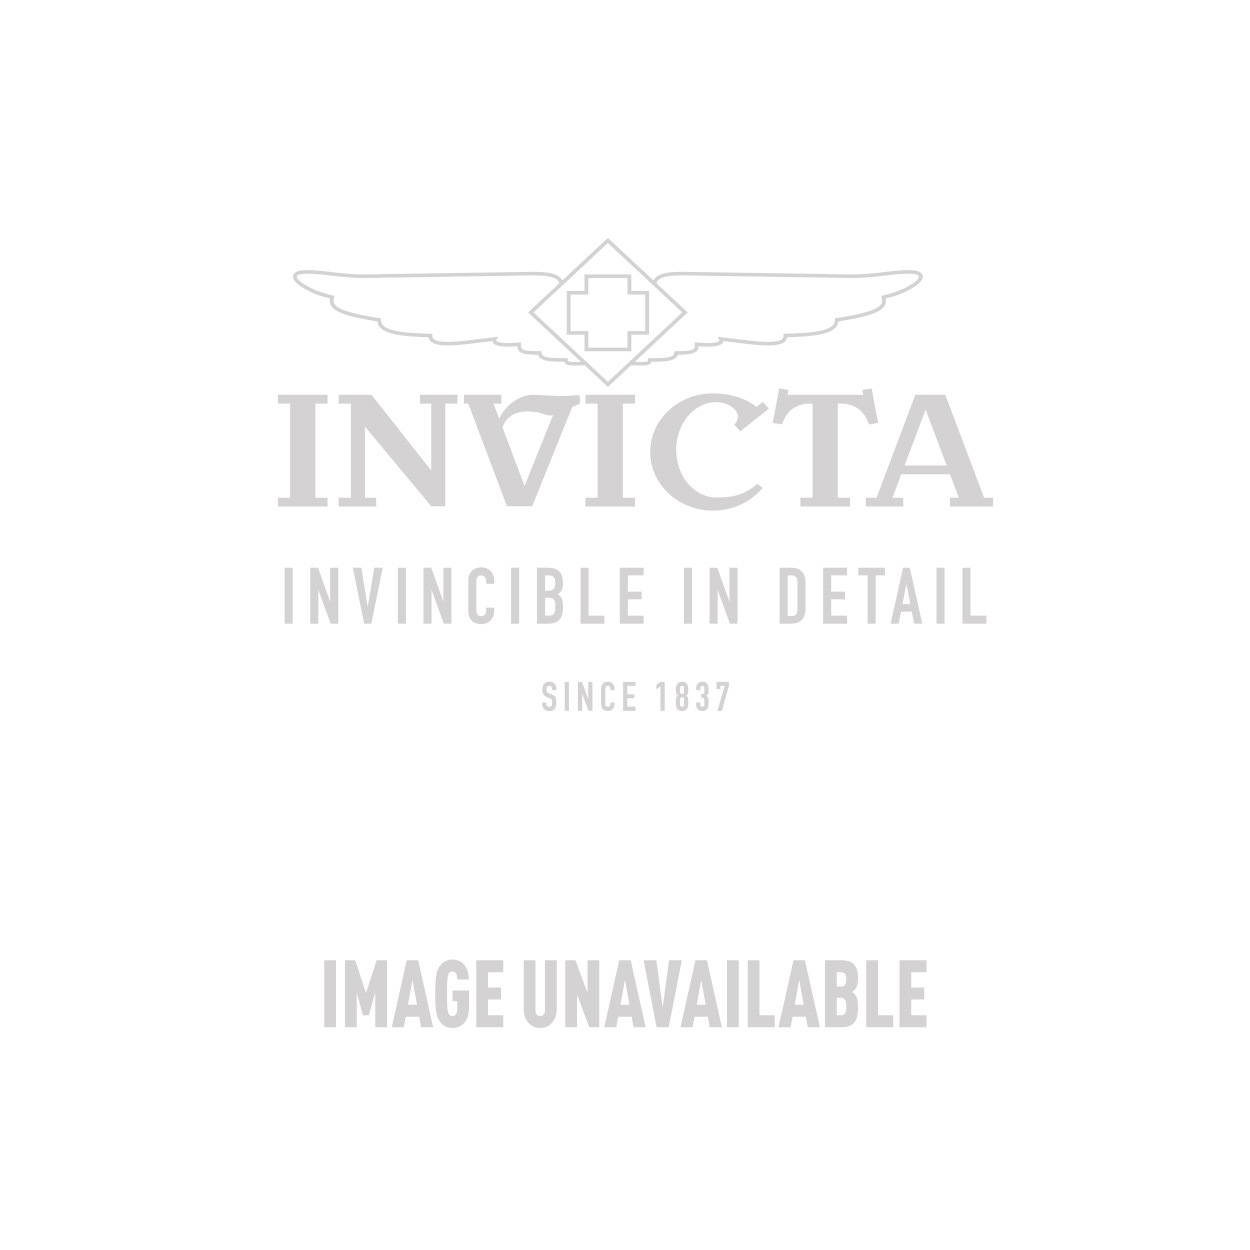 Invicta Specialty Quartz Watch - Gold case with Gold tone Stainless Steel band - Model 6399